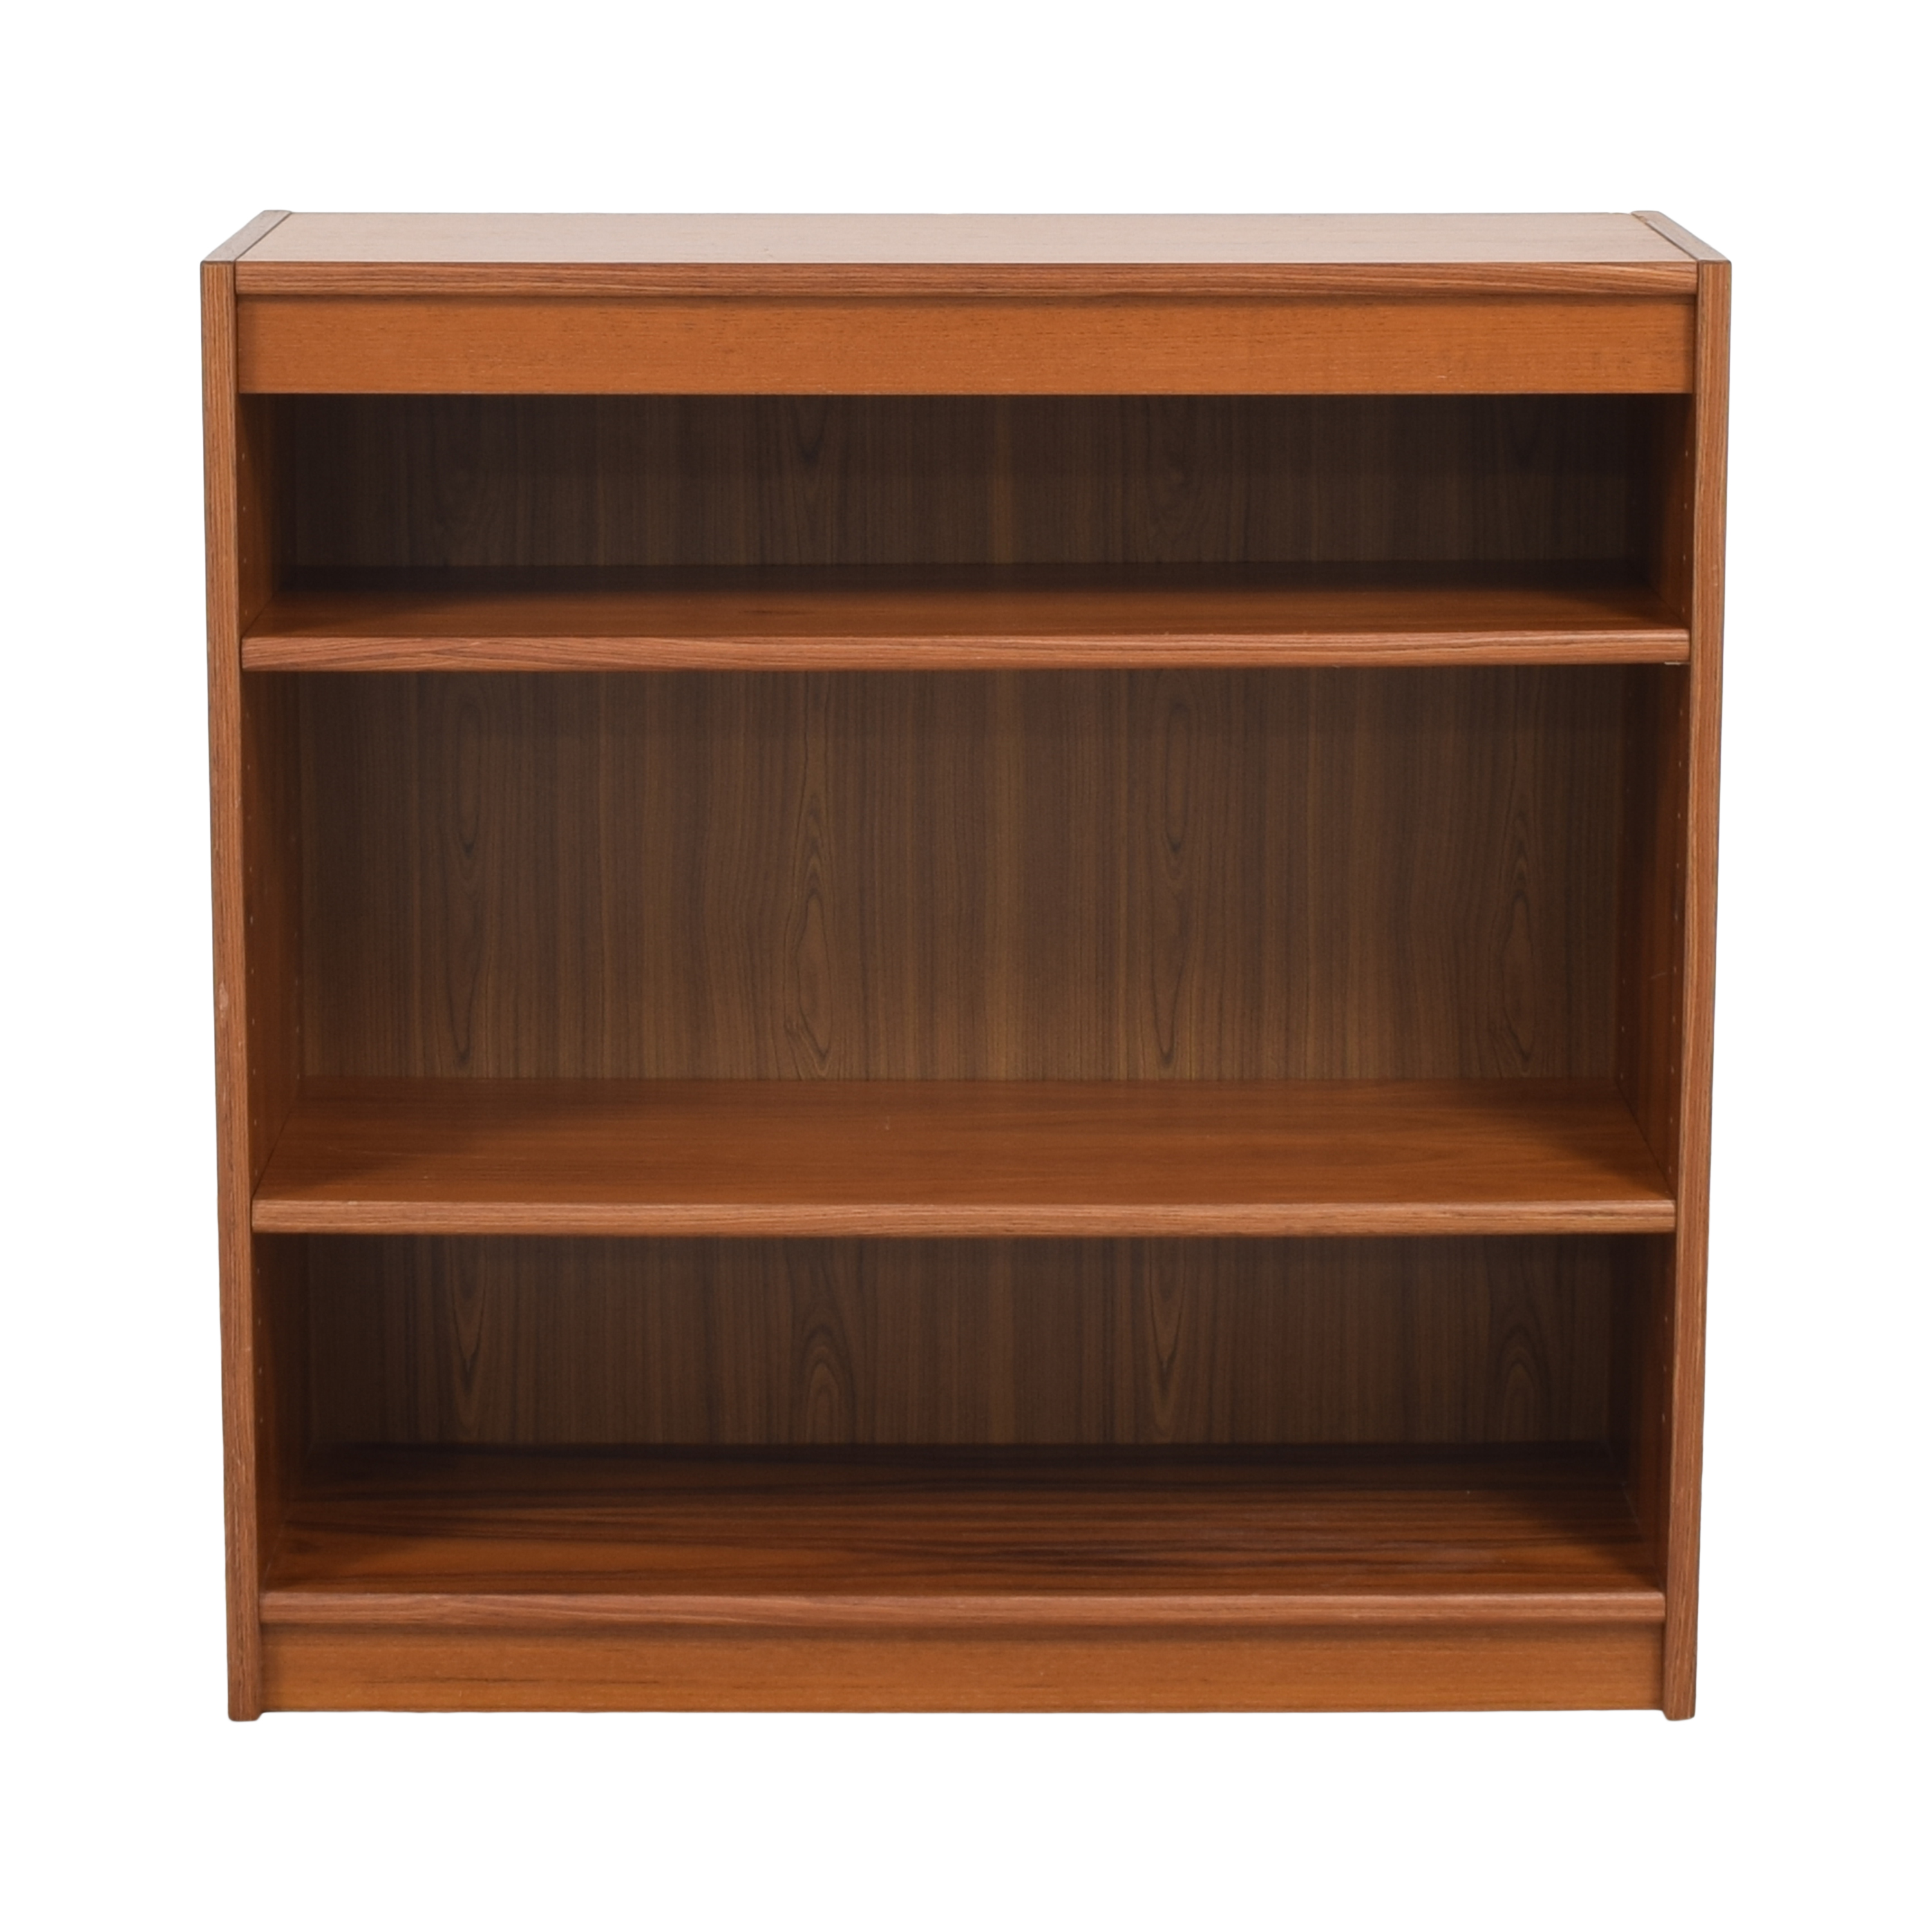 Three Shelf Bookcase used